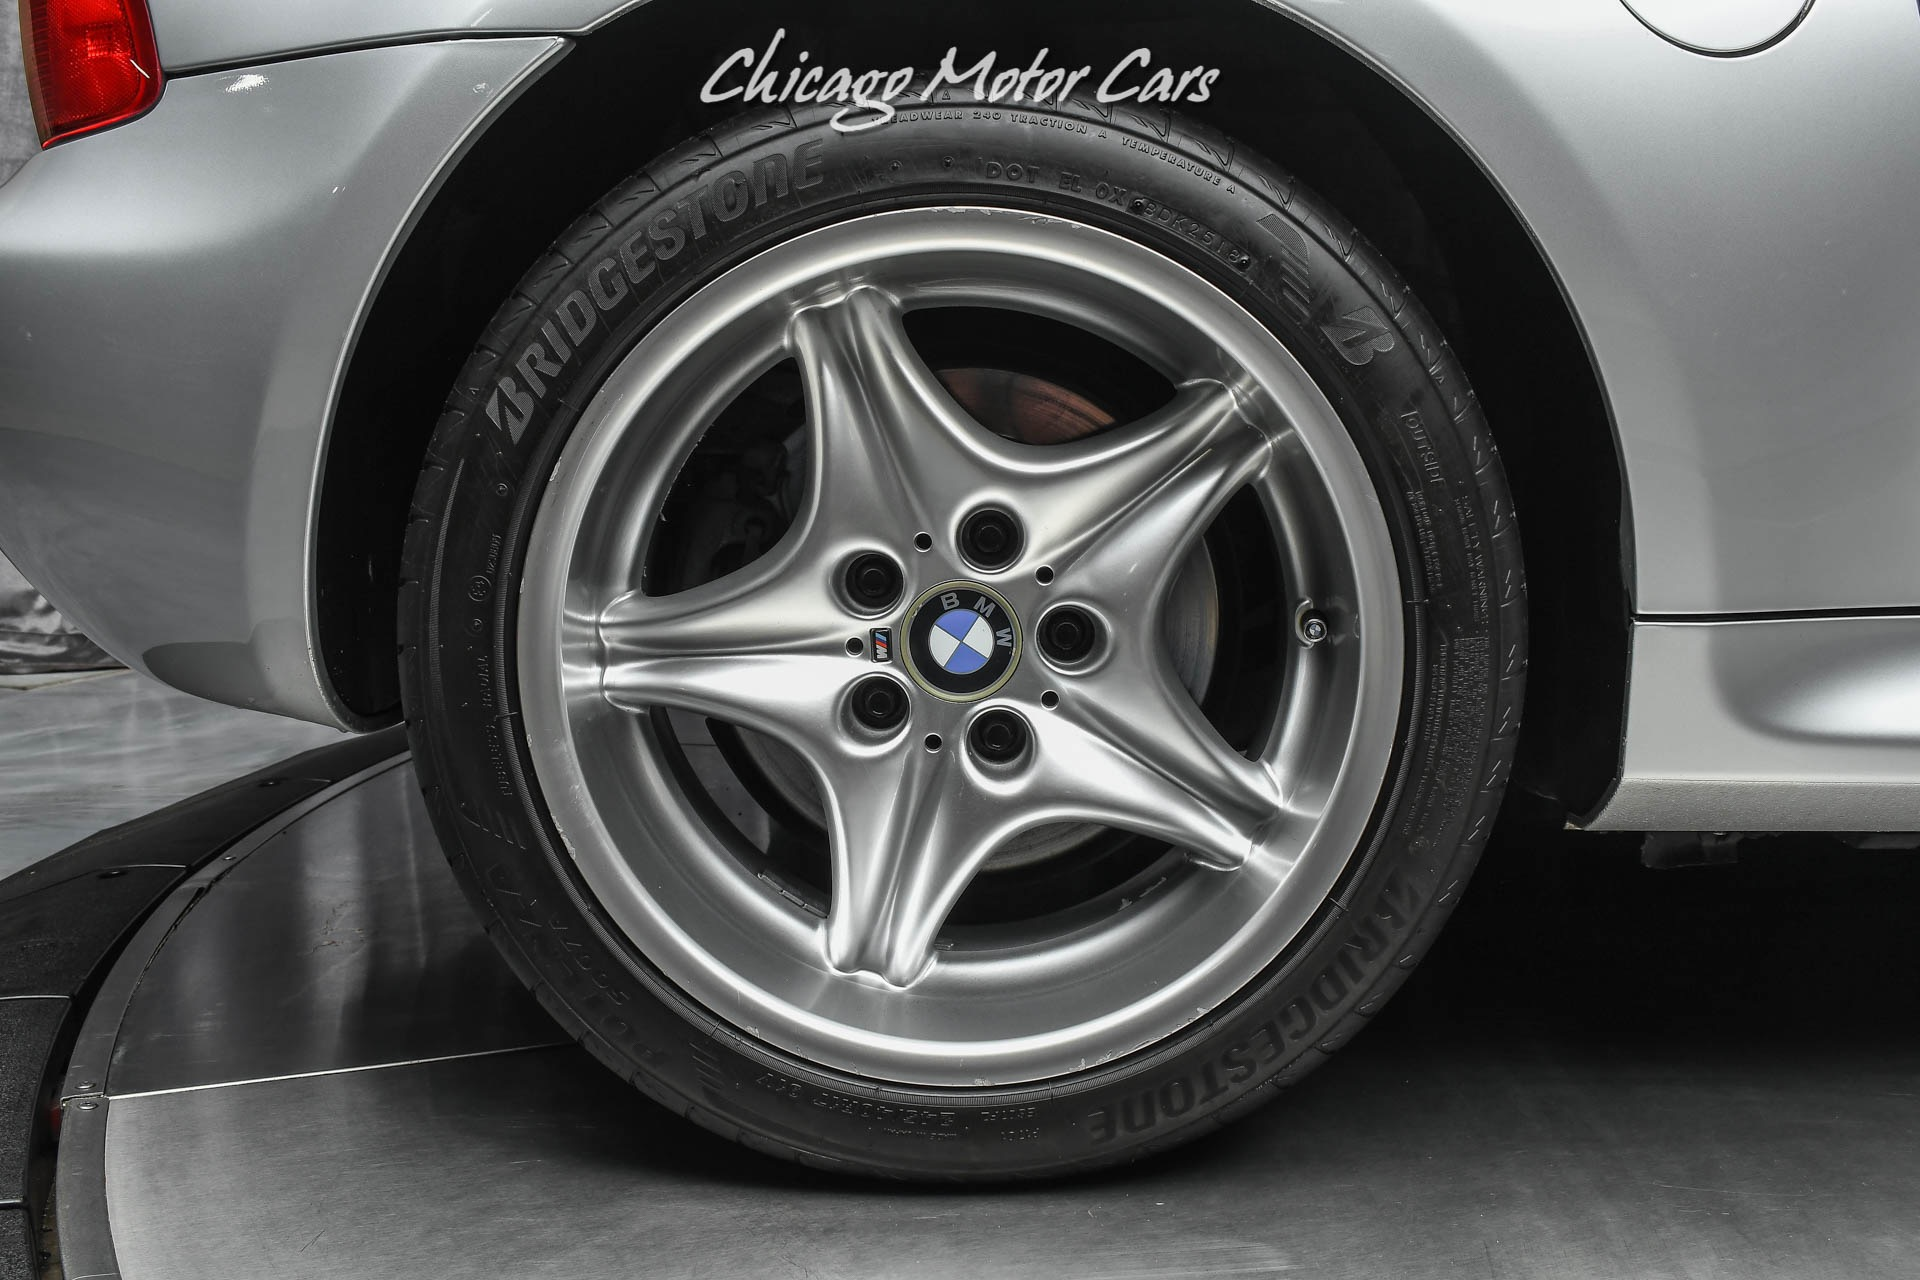 Used-2002-BMW-M-Coupe-Hatchback-5-Speed-Manual-ONLY-15K-MILES-CLEANEST-1-AVAILABLE-PERFECT-Serviced